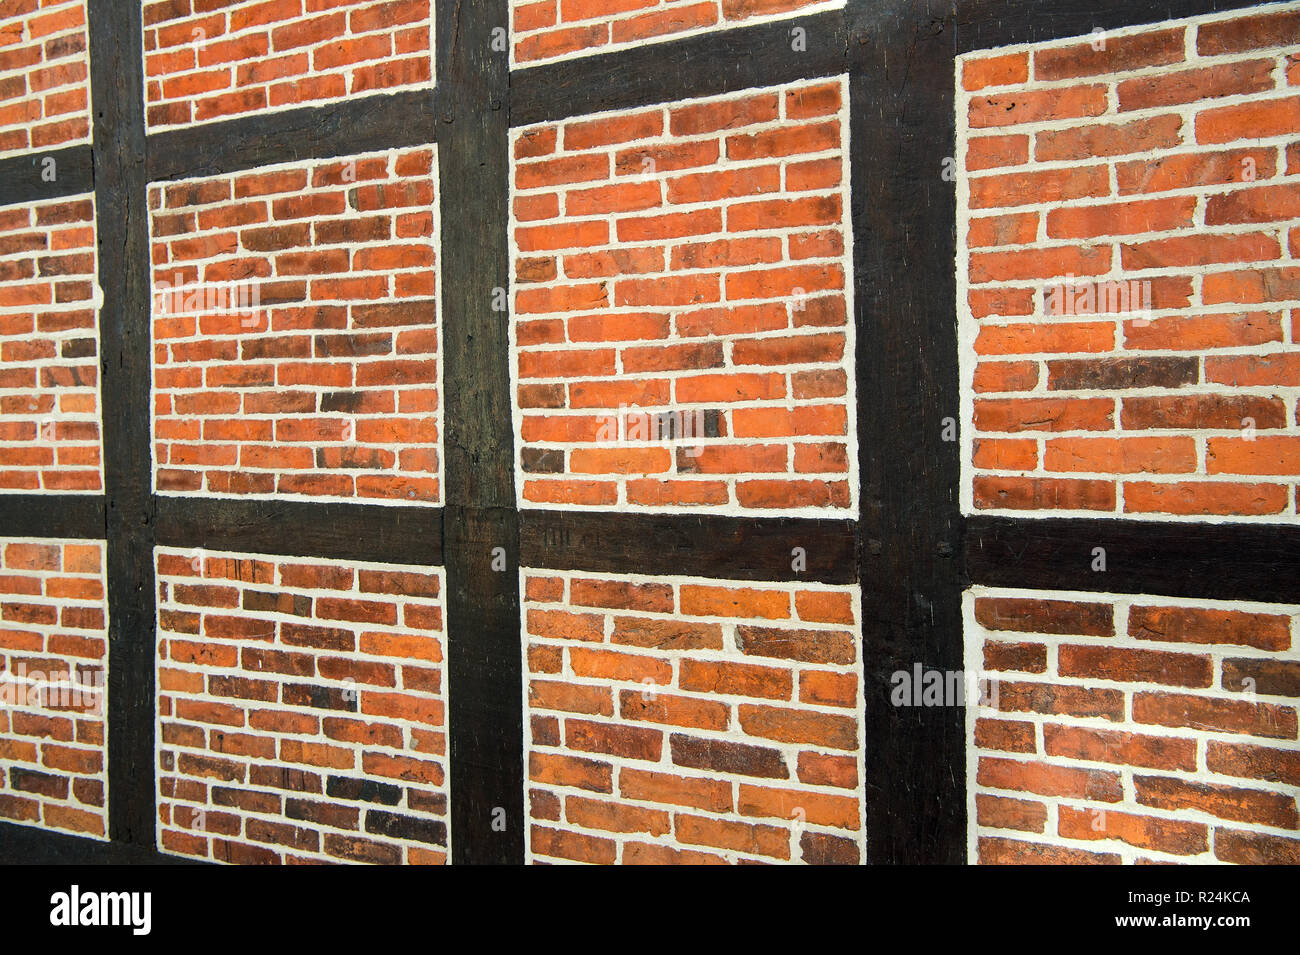 Architecture, construction and building concept. House wall of red bricks and wood textured surface on brickwork background. - Stock Image